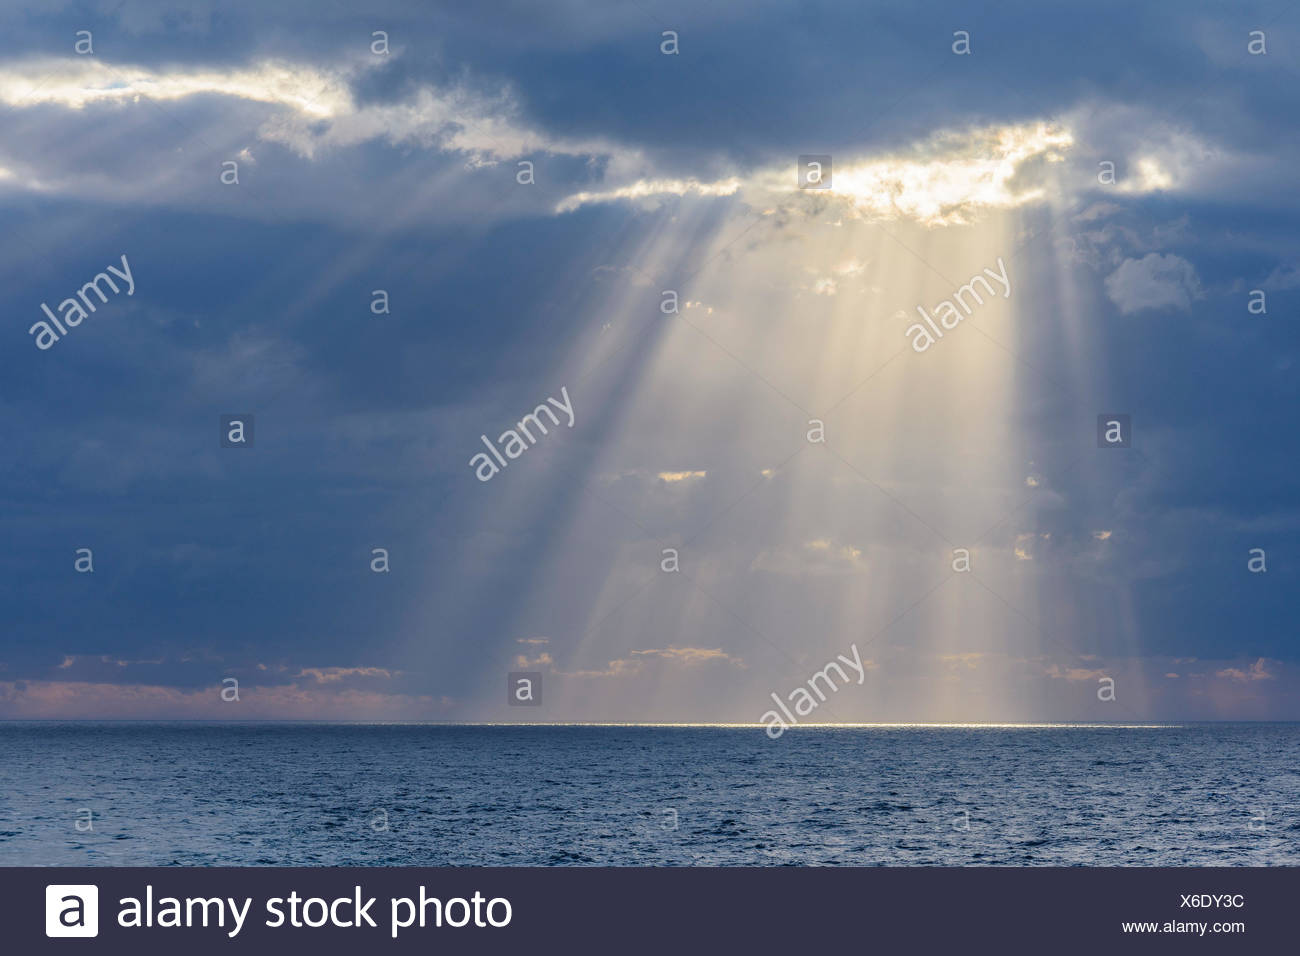 Sun breaks through the clouds with sunrays over sea, North Sea, United Kingdom - Stock Image